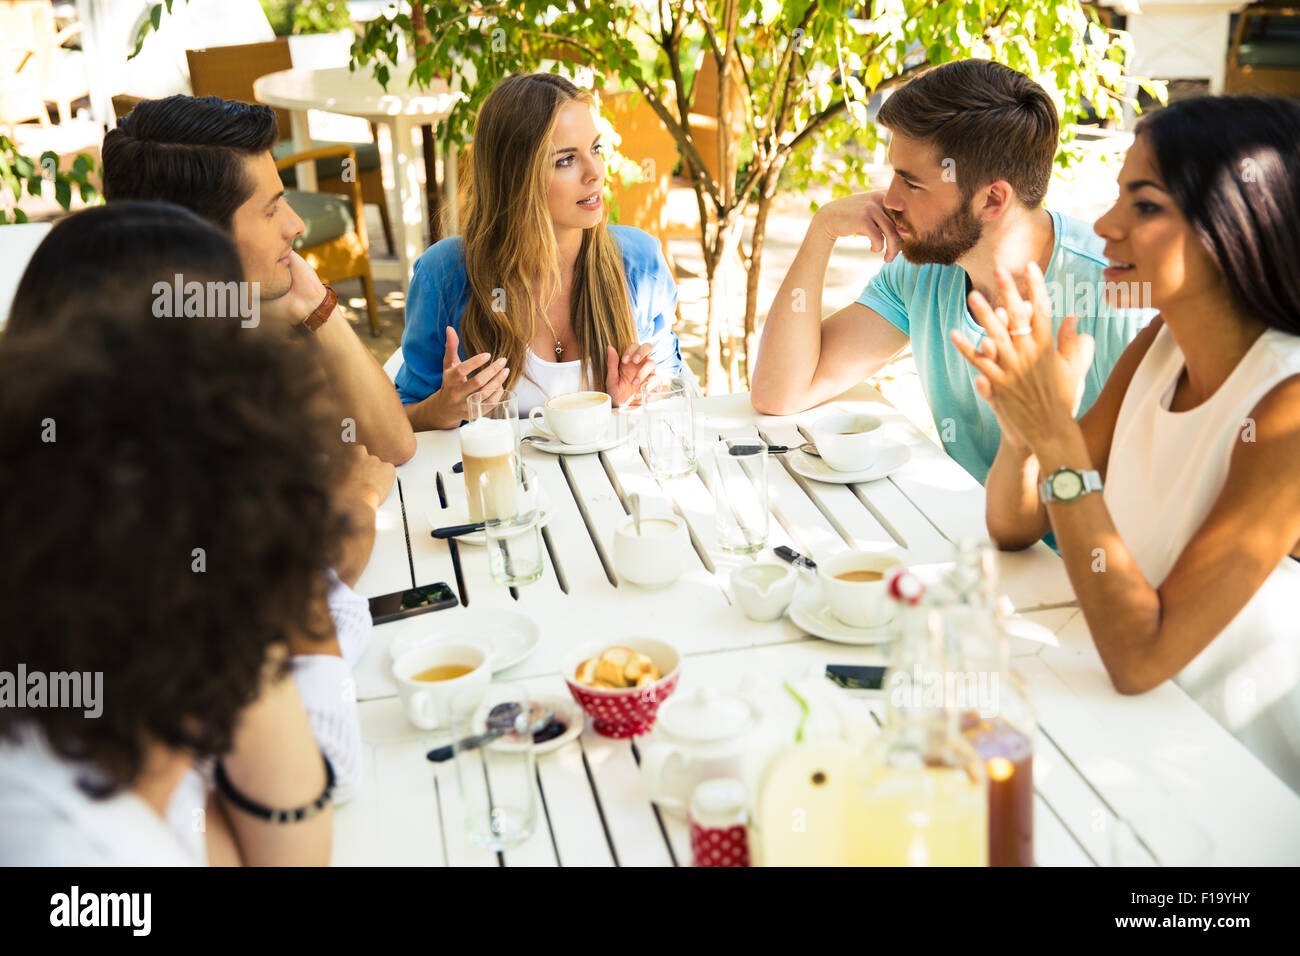 Smiling young friends enjoying meal in outdoor restaurant Stock Photo